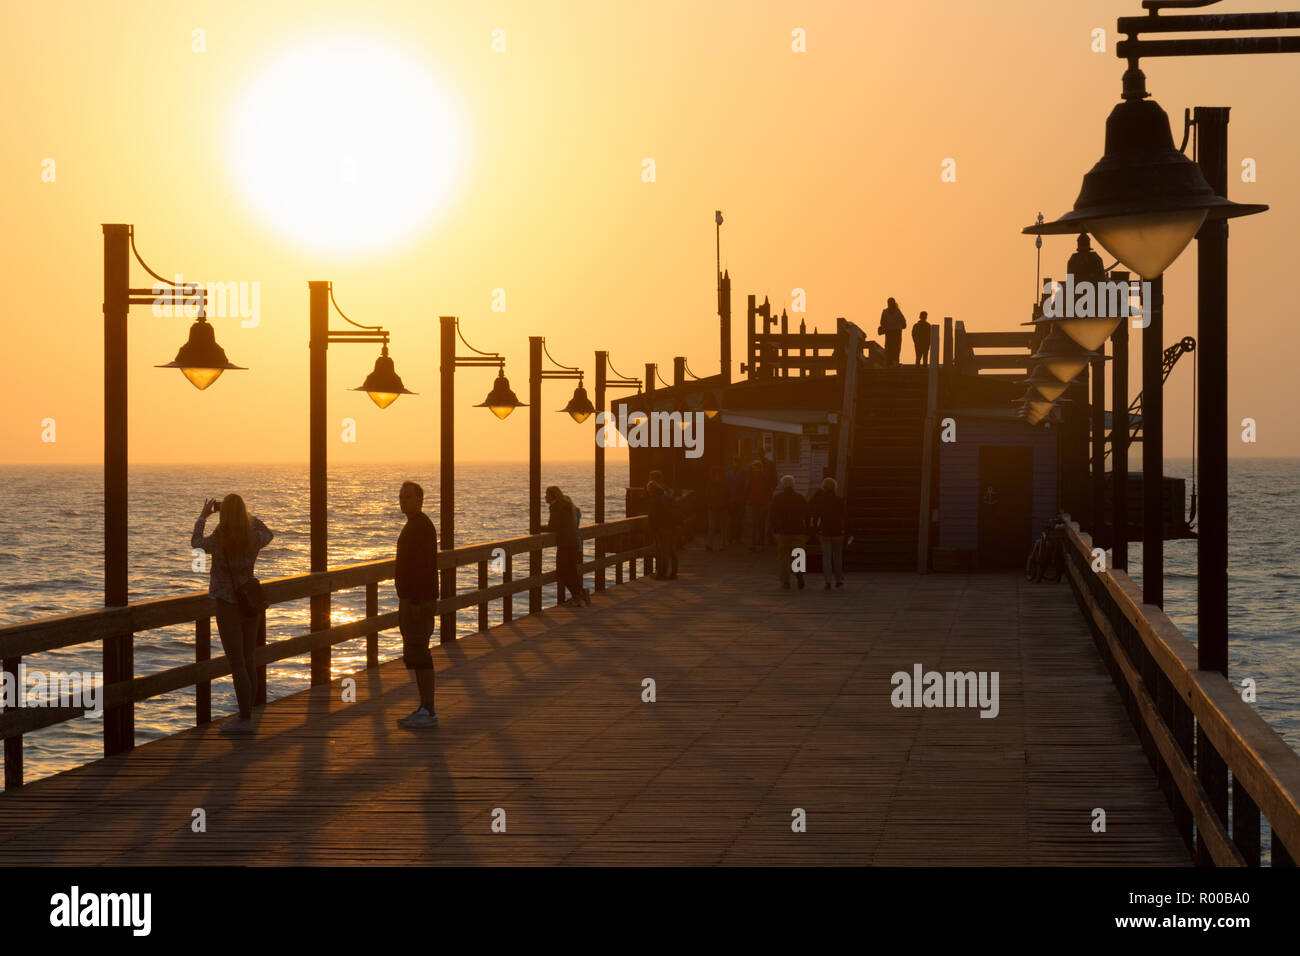 Namibia sunset - tourists on the jetty, Swakopmund, Namibia Africa - Stock Image